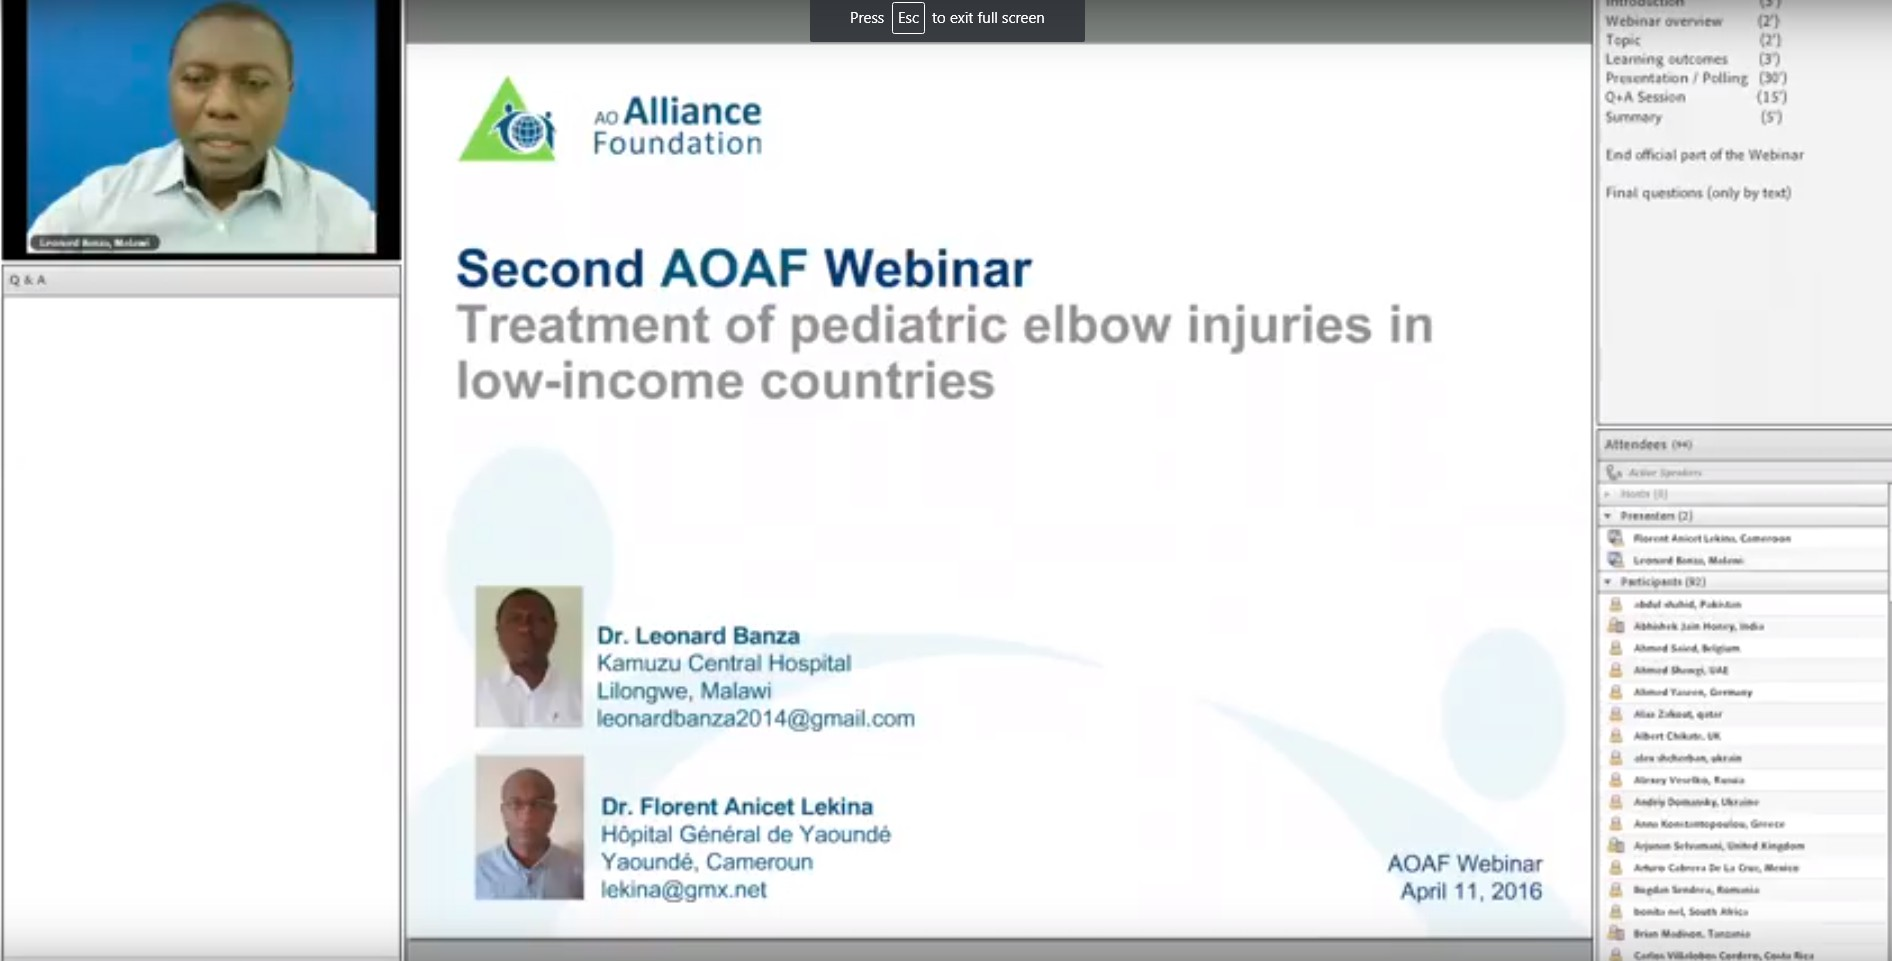 Treatment of pediatric elbow injuries in LICs